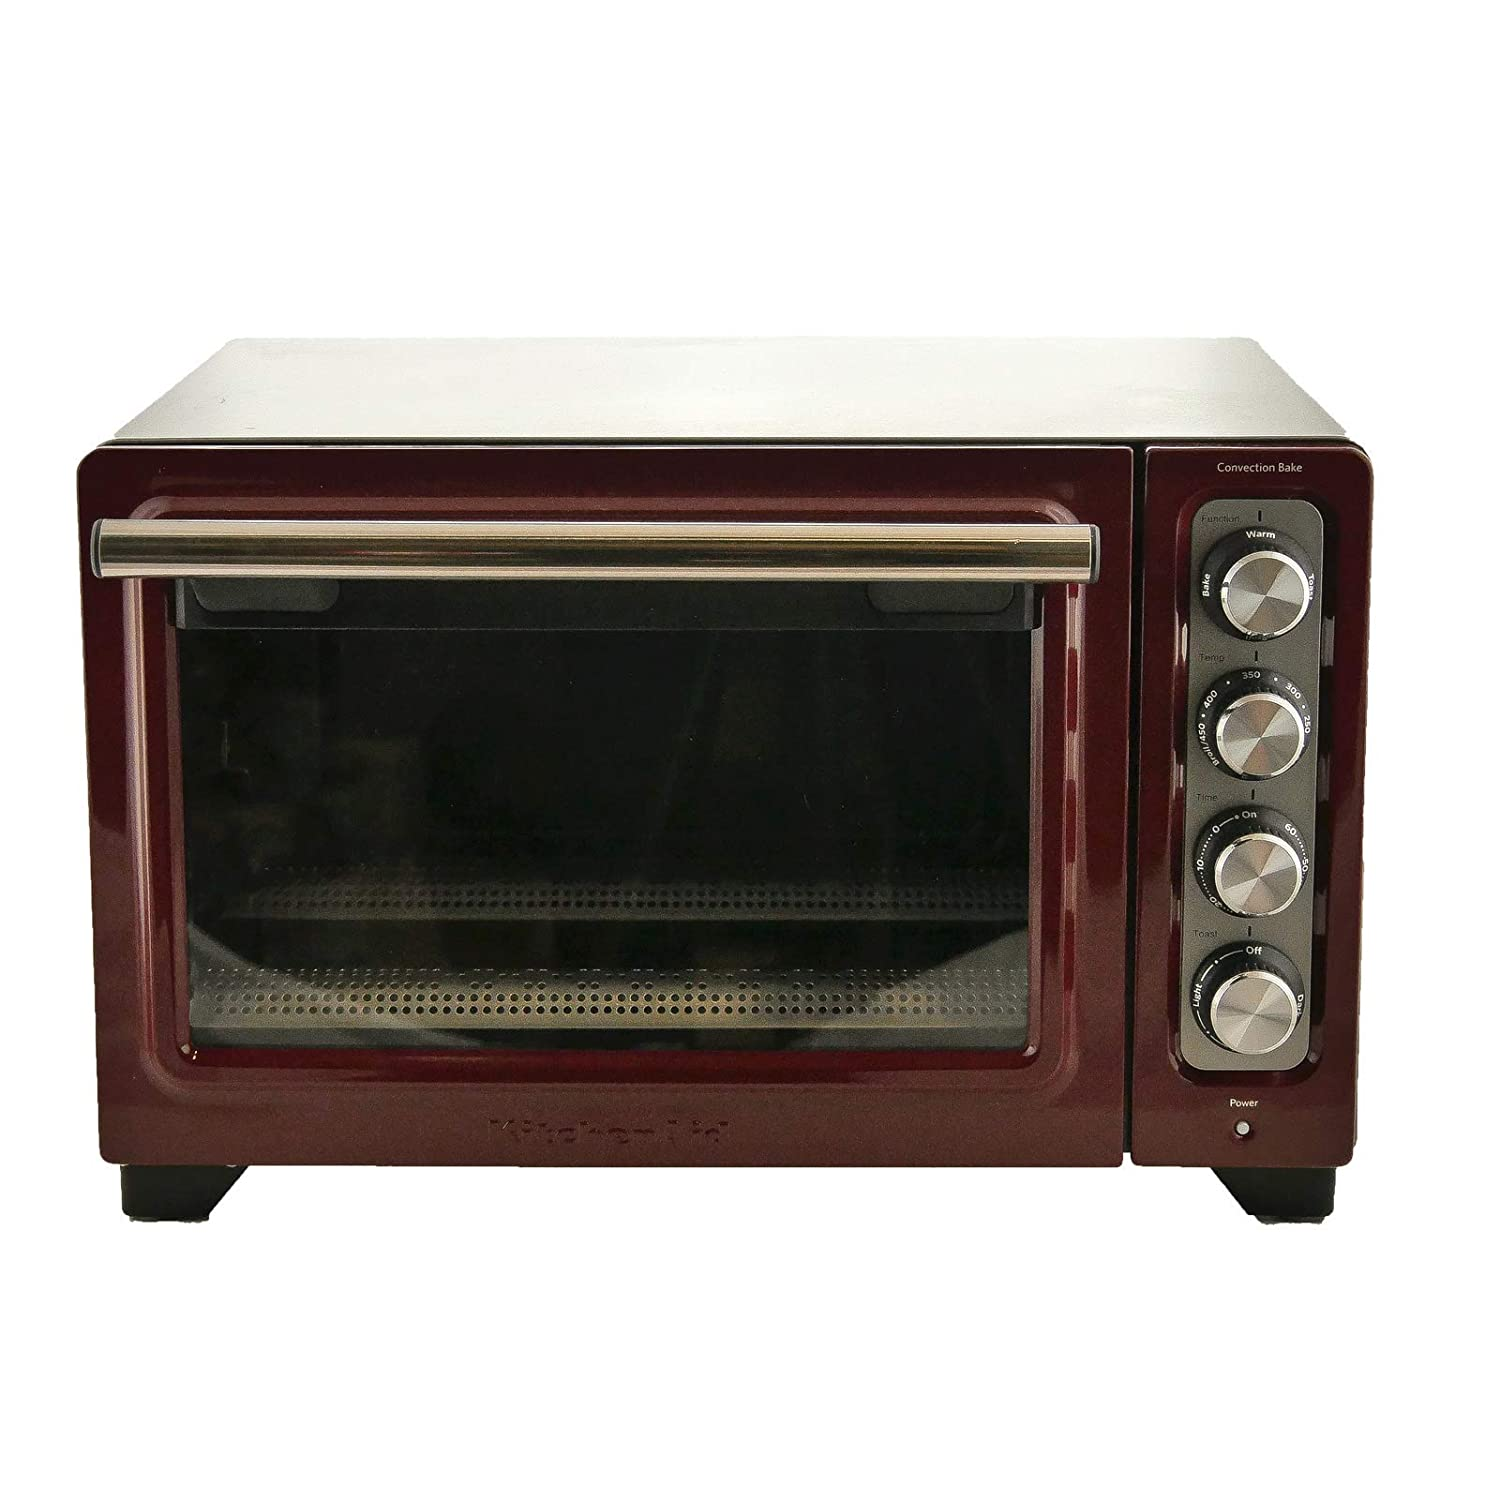 KitchenAid RKCO253GC 12 Inch Counter Top Oven Gloss Cinnamon - (Certified Refurbished) (Renewed)